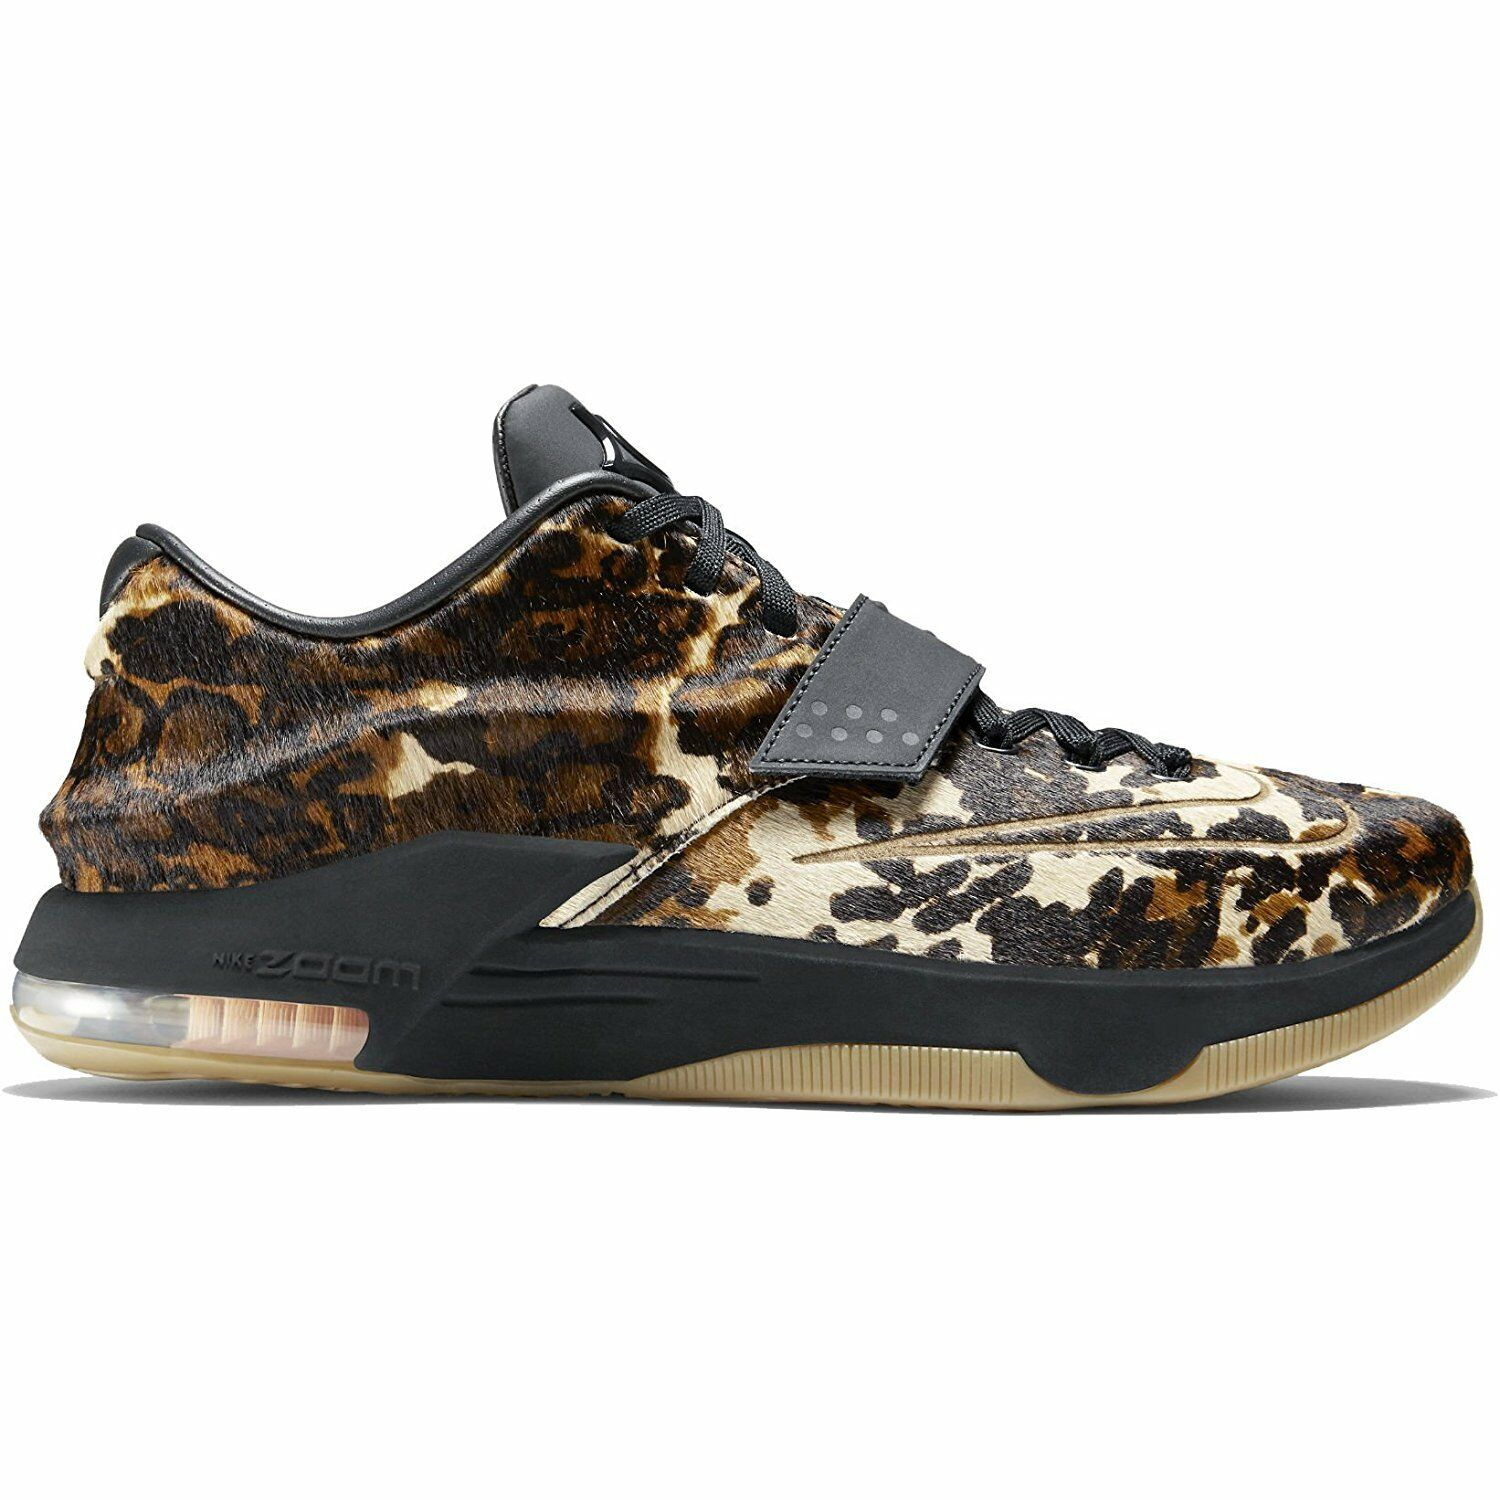 Men's Nike Kevin Durant VII EXT Quick Strike Leopard Athletic Fashion 716654 001 best-selling model of the brand